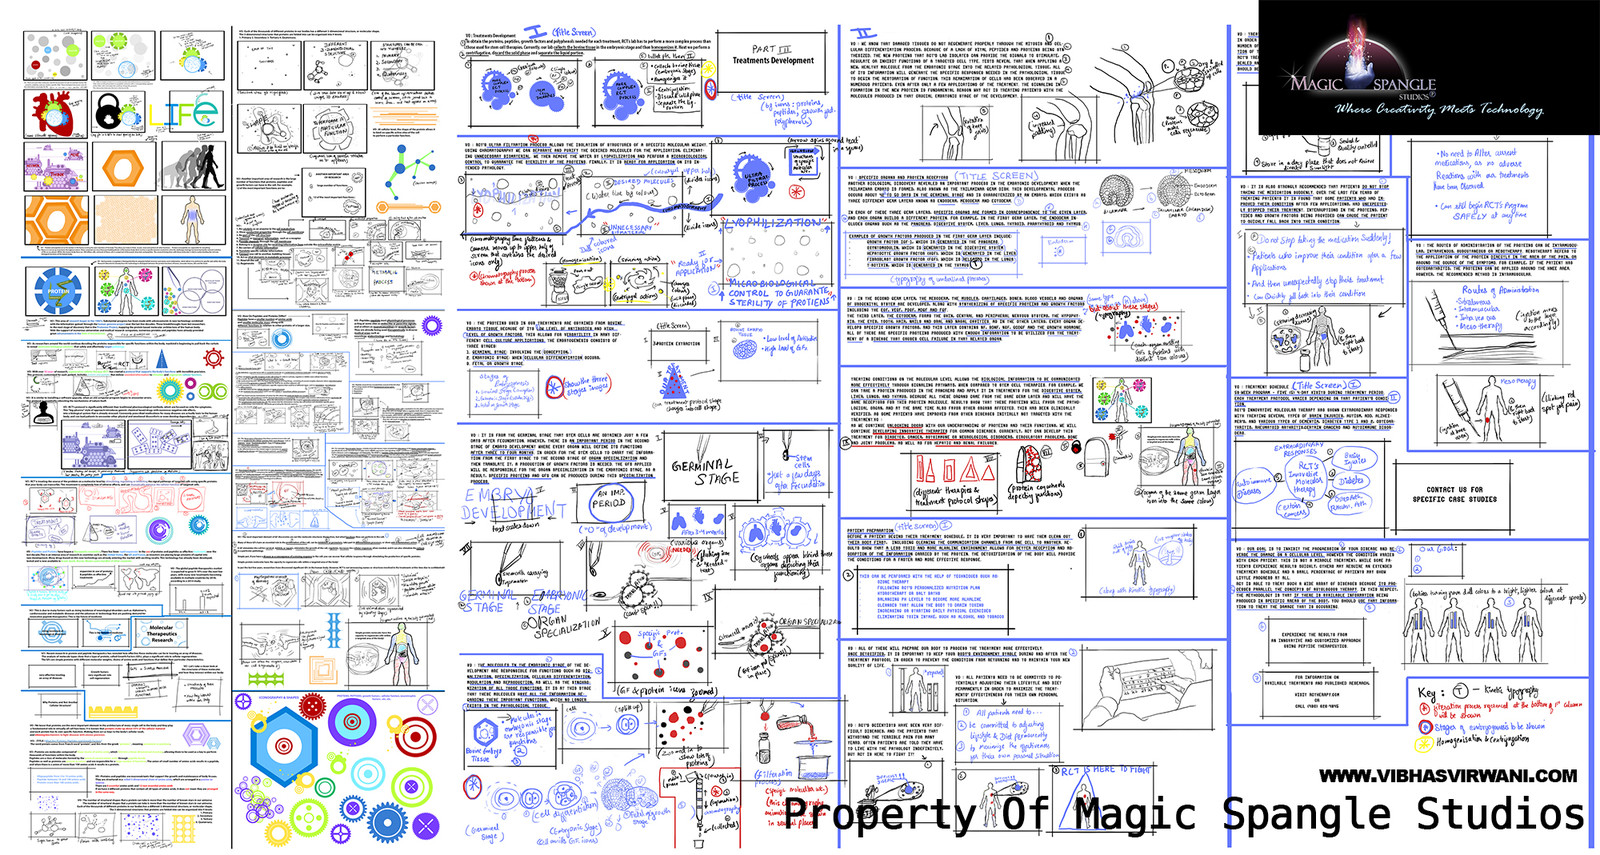 Regenerative cellular therapy storyboard